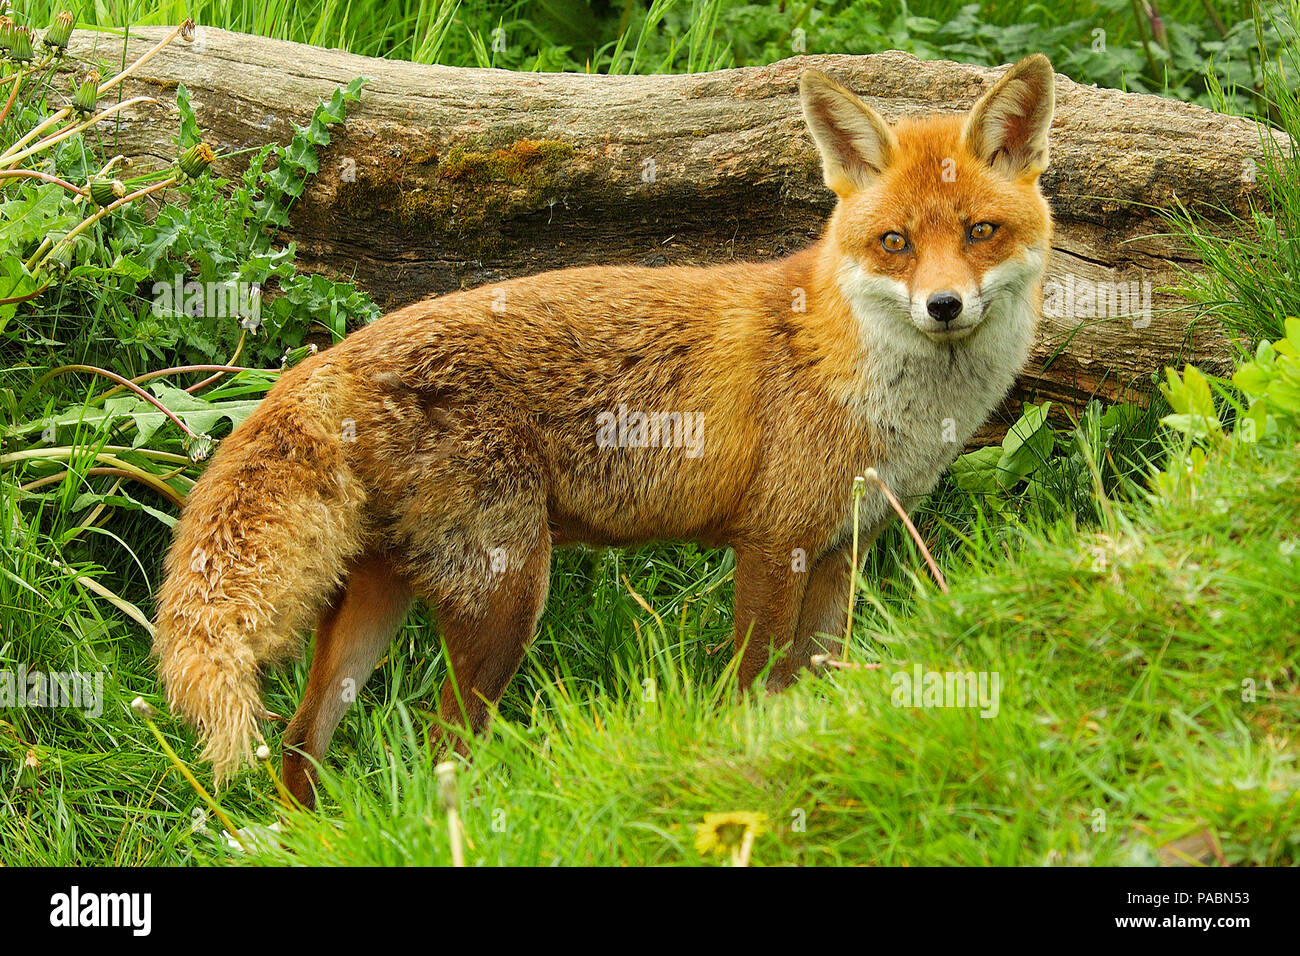 Adult European Red Fox (Vulpes vulpes) standing and looking towards the front showing the entire length of her body - Stock Image